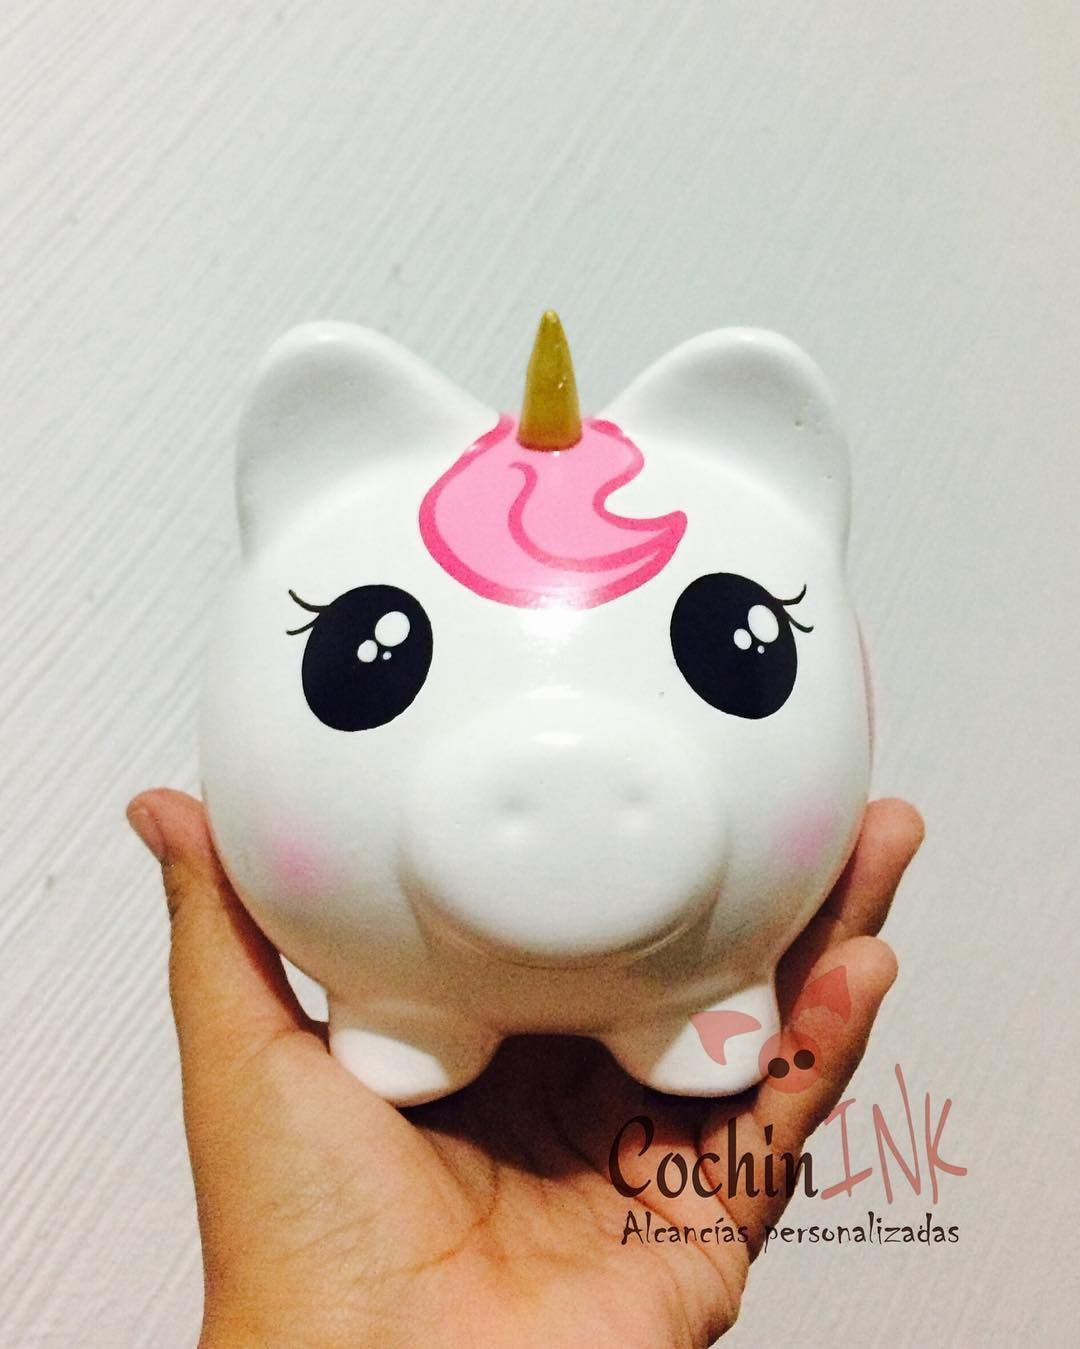 Piggy Bank Idea Pin By Maria Peña On Unicorns In 2018 Pinterest